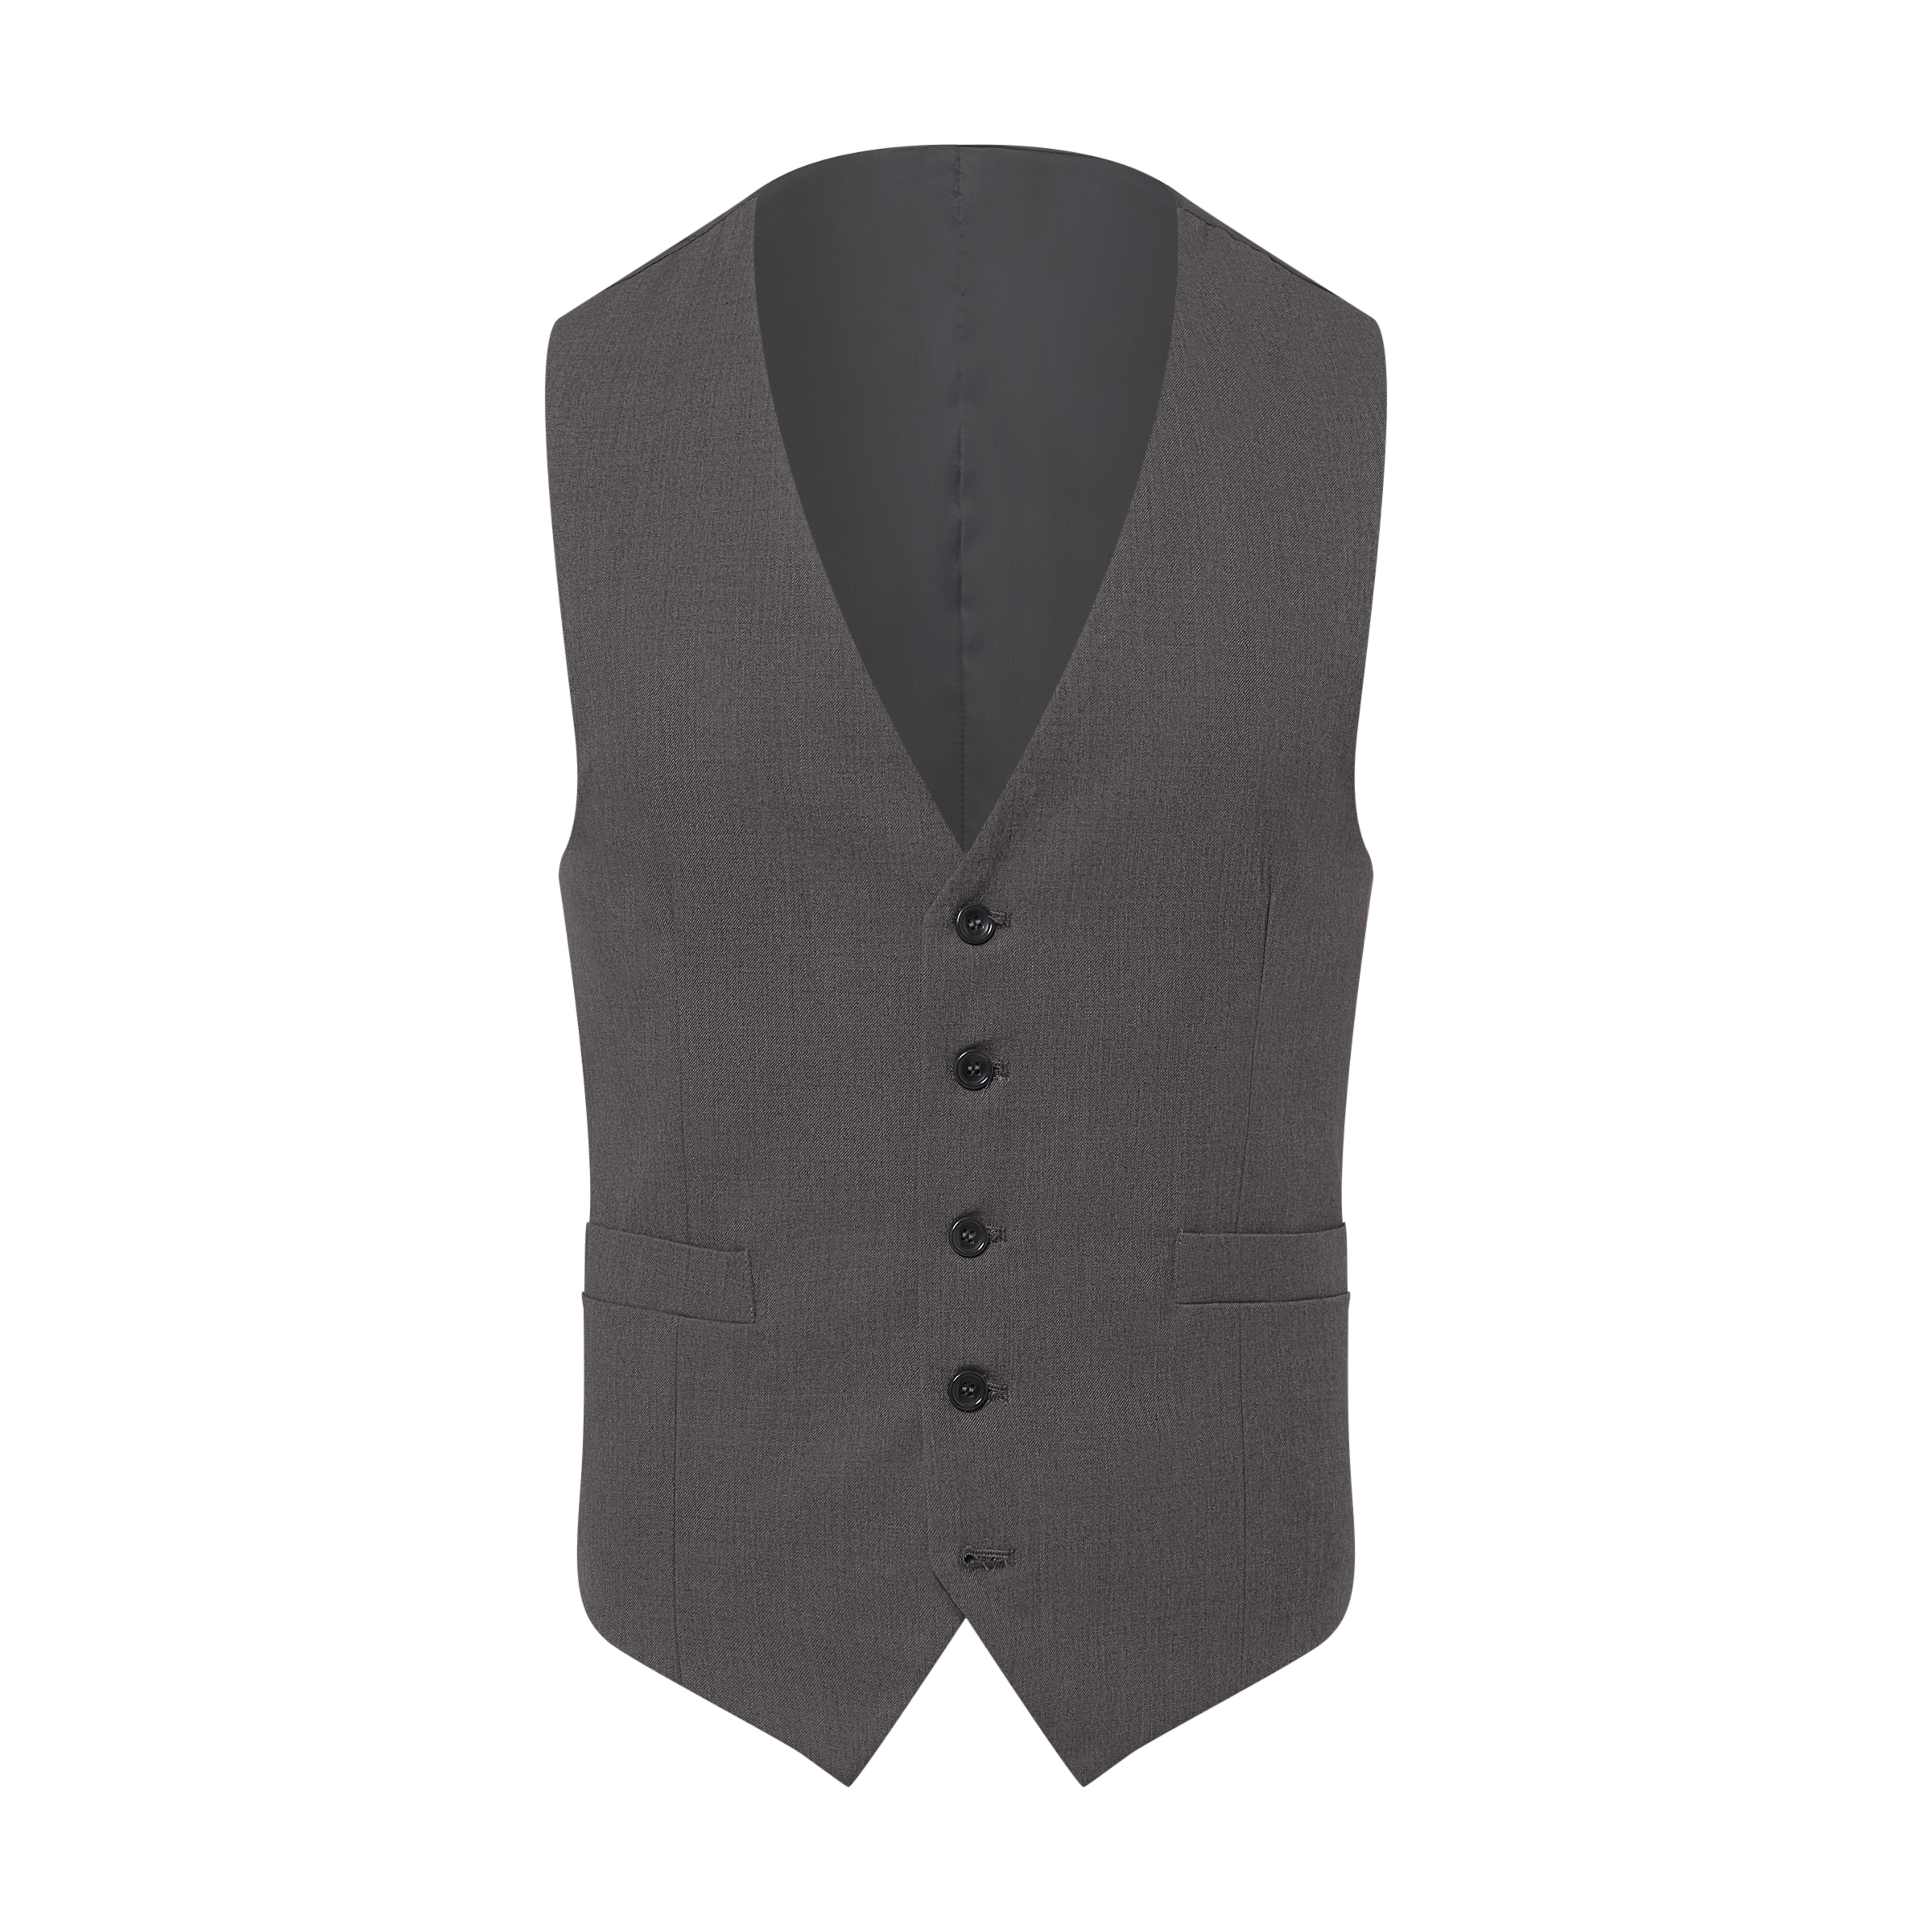 Vest ghost mannequin product photo